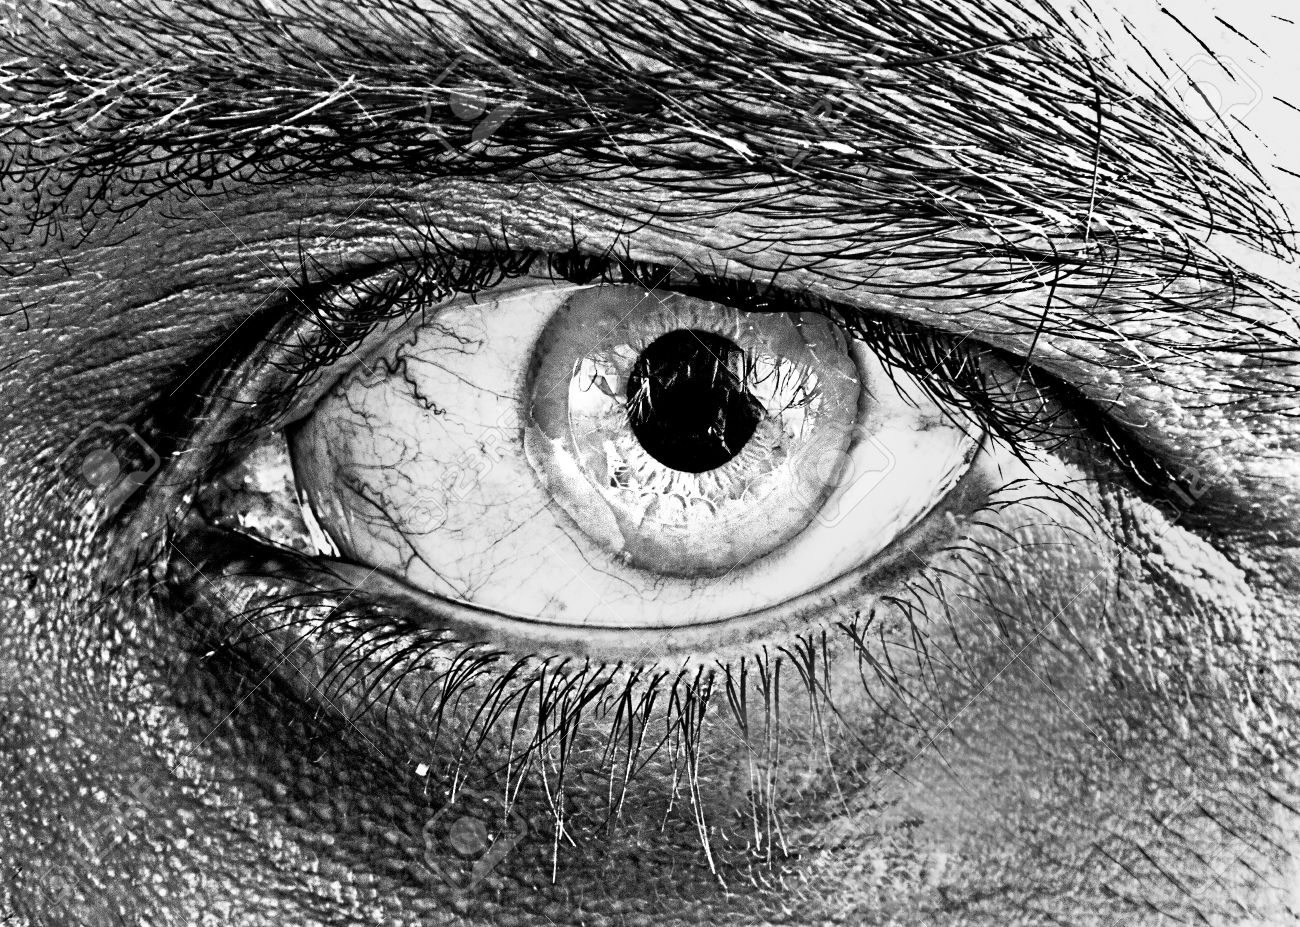 Close up of human eye in black and white with sharp focus and clarity and